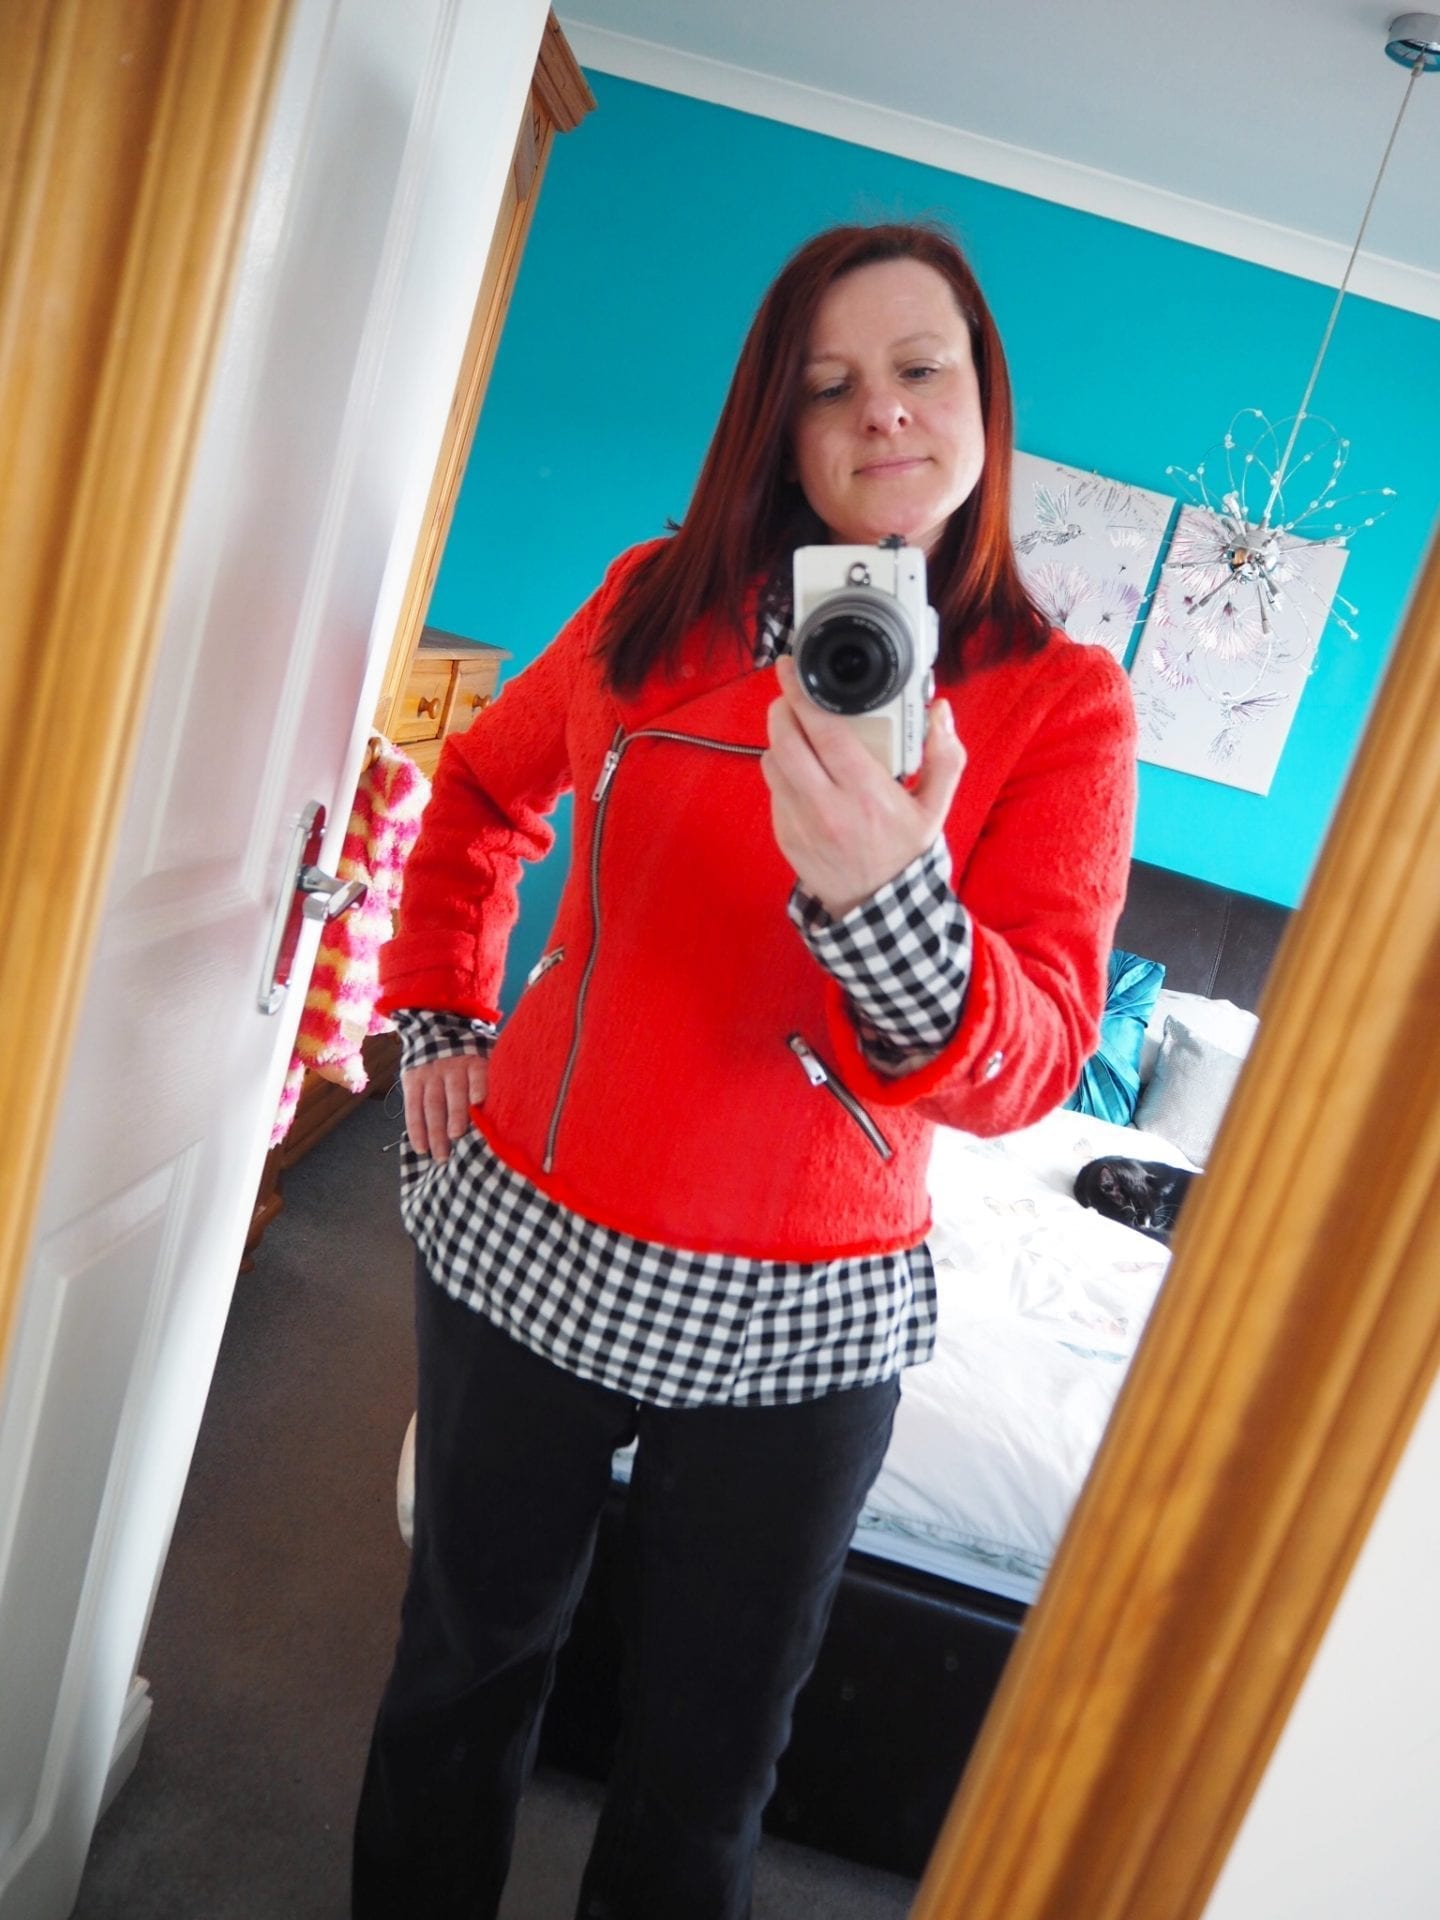 Slimming World 12 Weeks Later